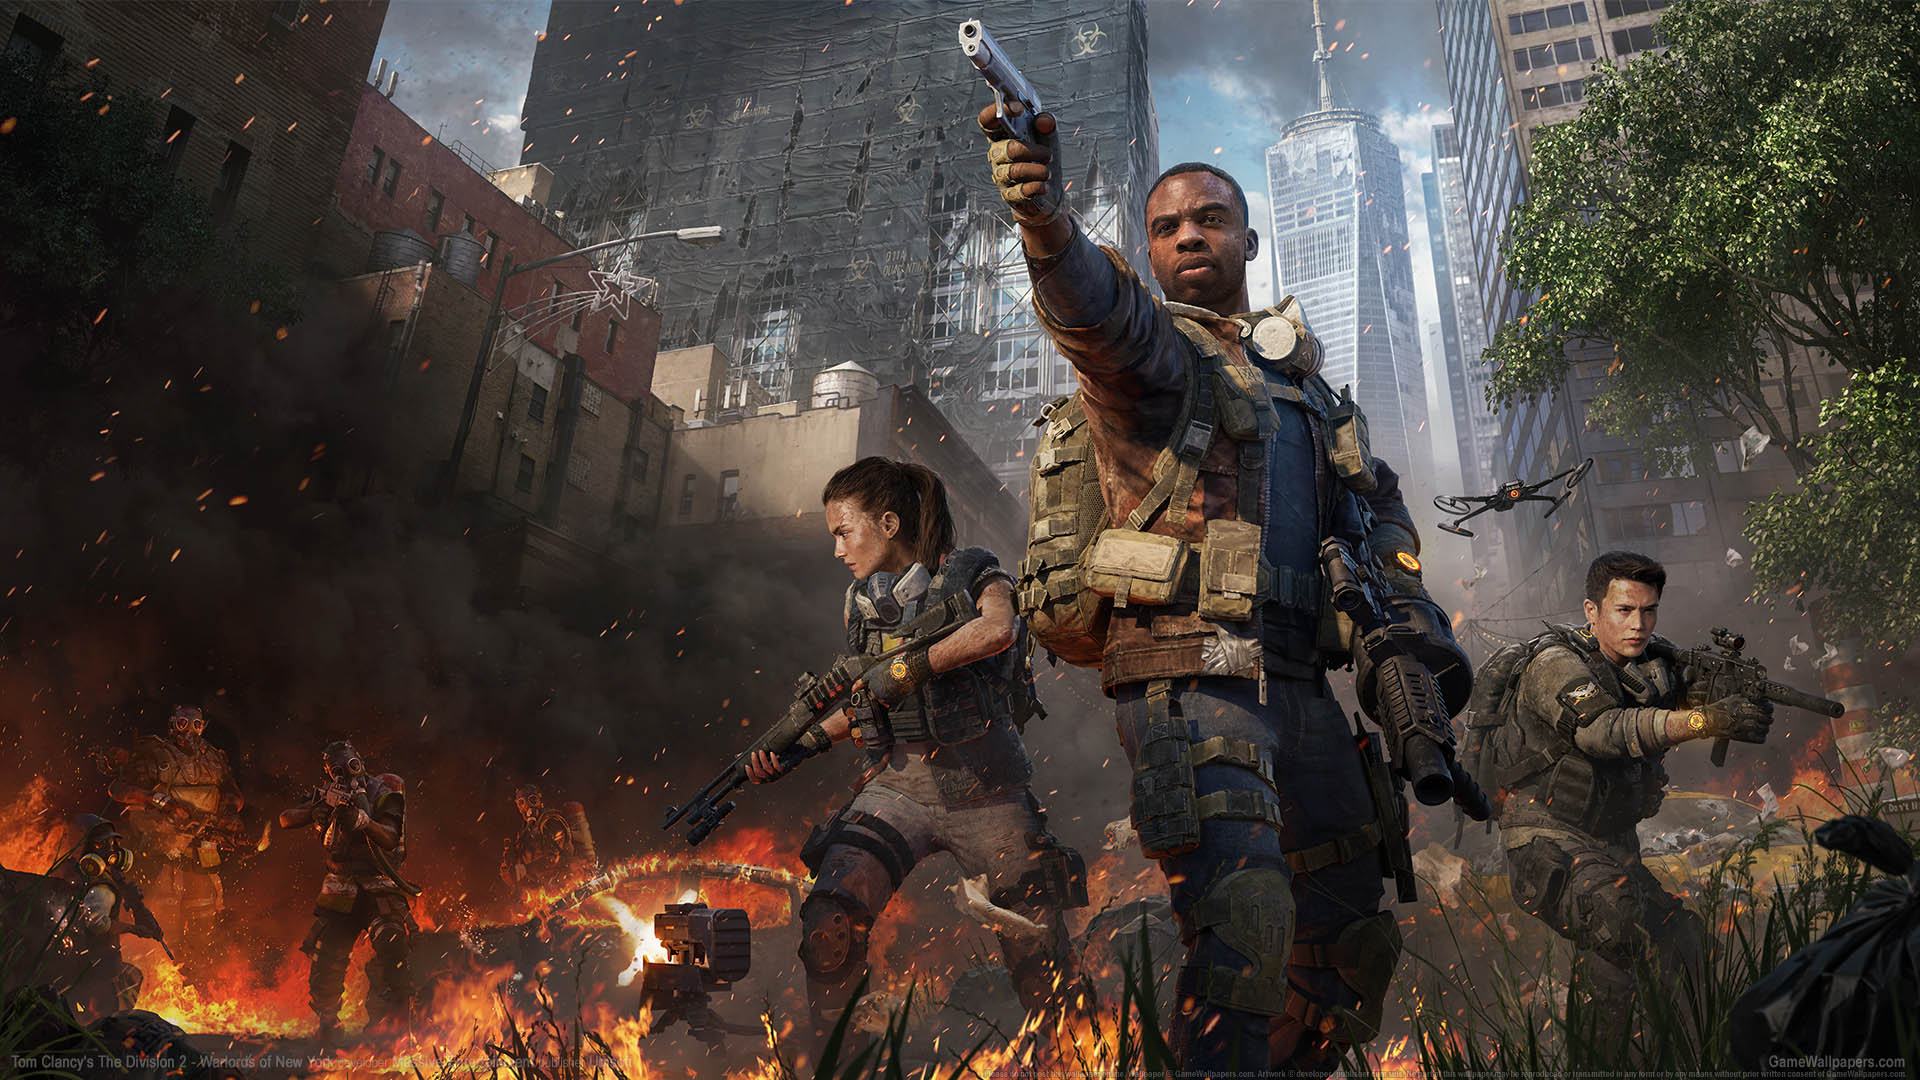 Tom Clancy's The Division 2 - Warlords of New York Hintergrundbild 02 1920x1080